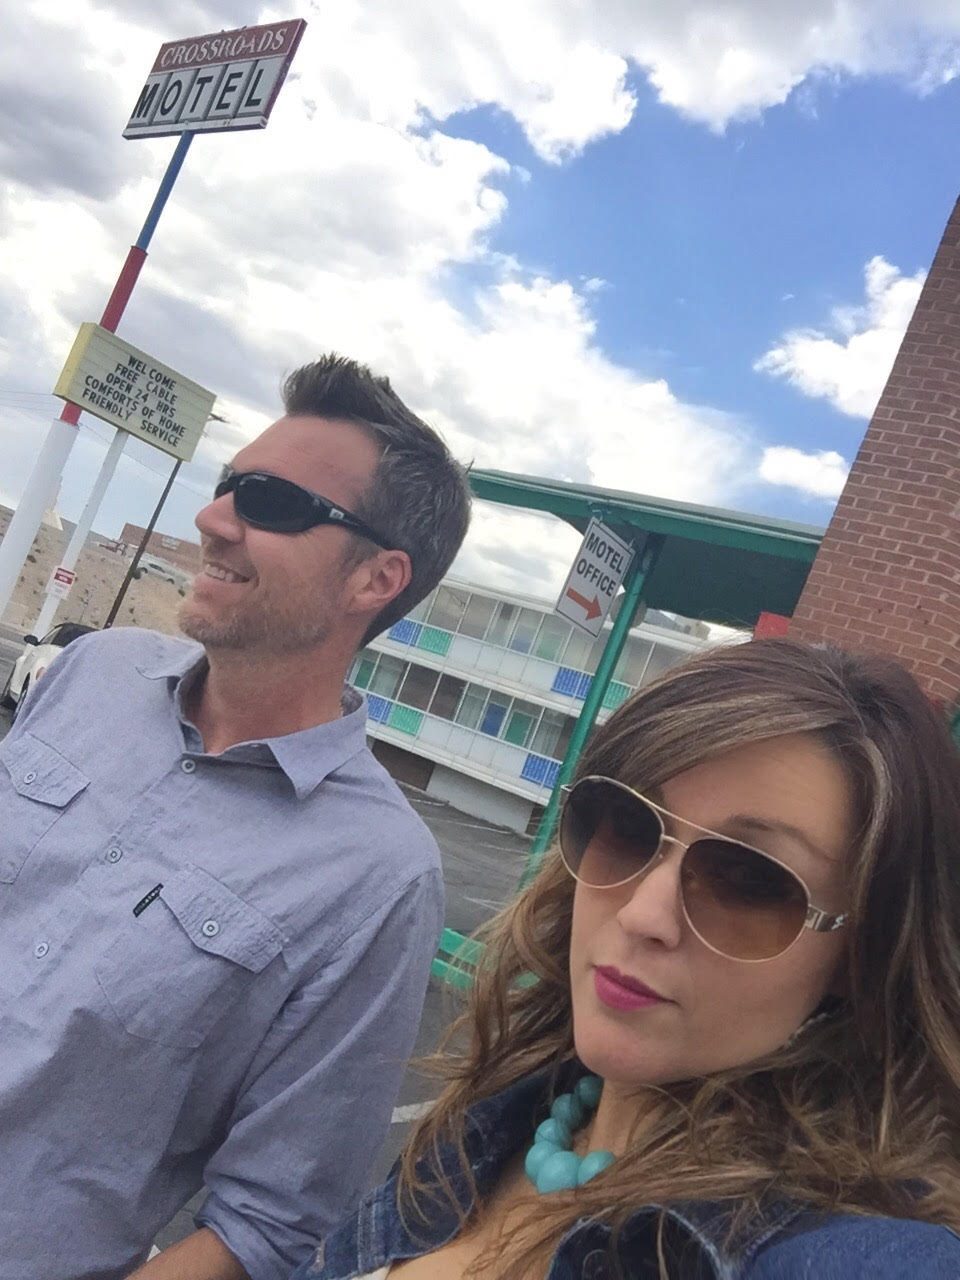 KMGA 995 Magic FM Albuquerque Launches New Morning Show With Co Hosts Meredith Dunkel And Chris Fox